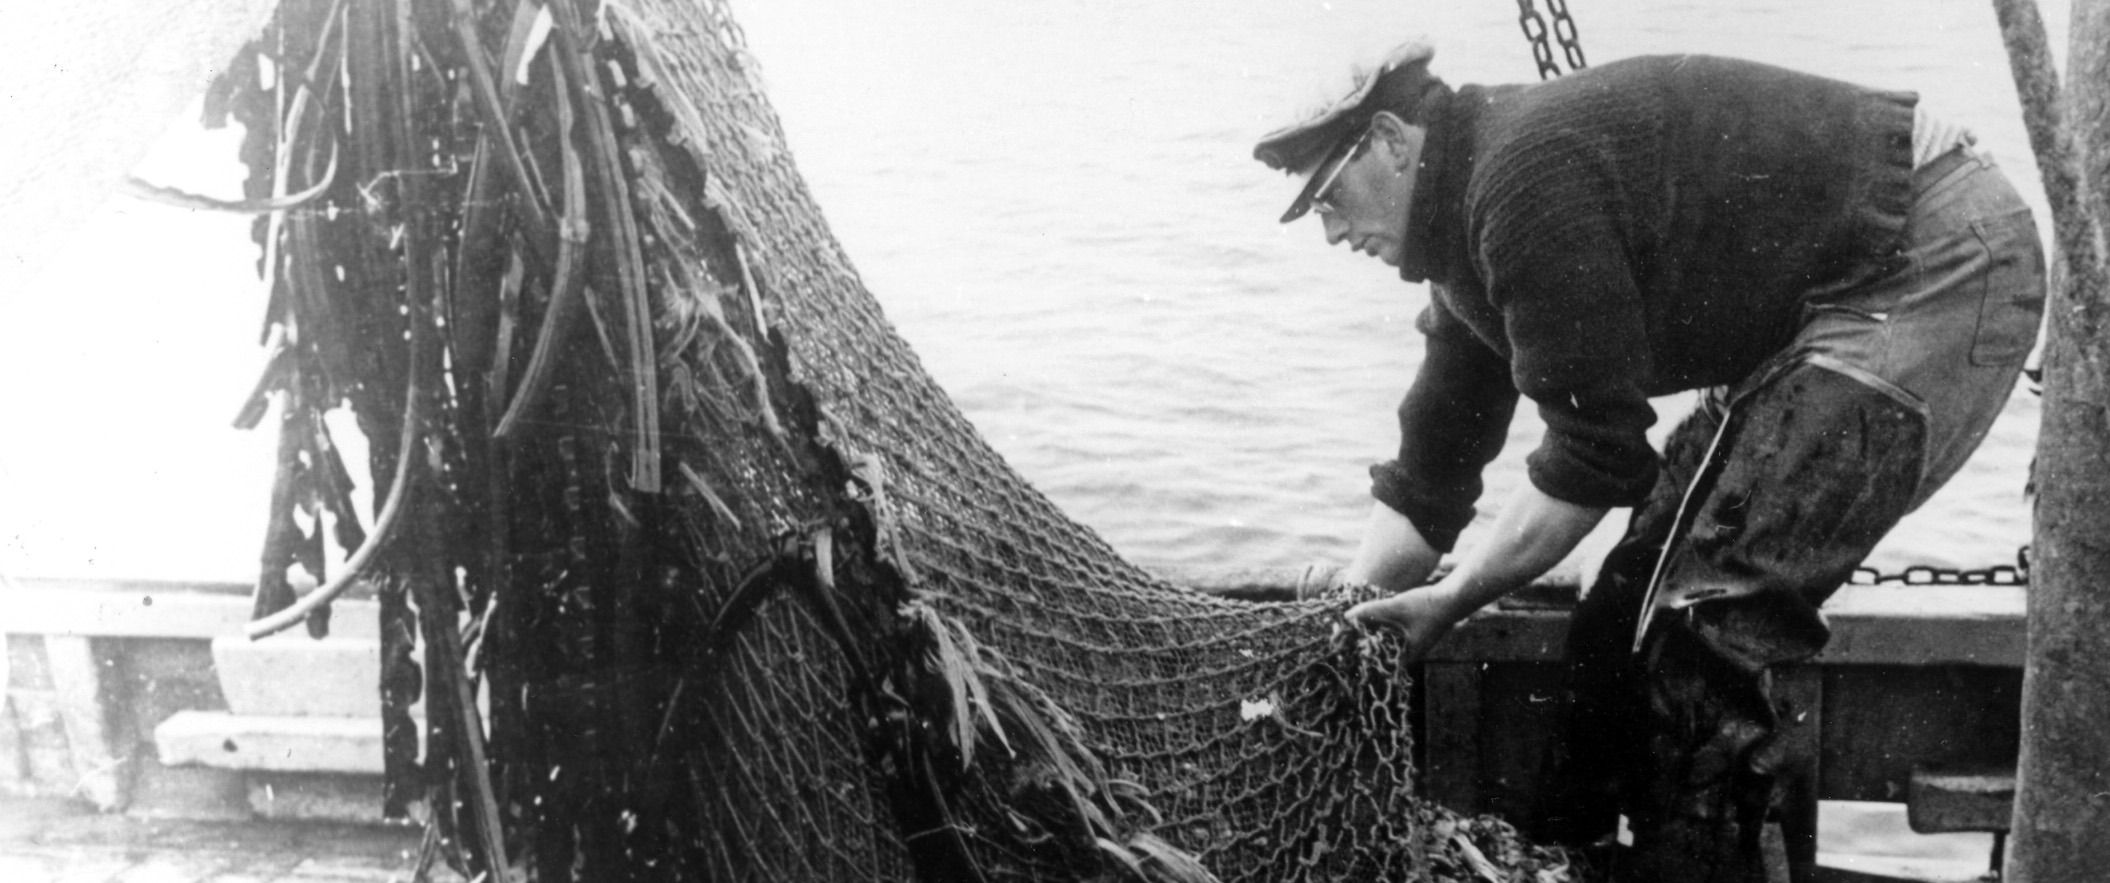 Emptying the fishing net